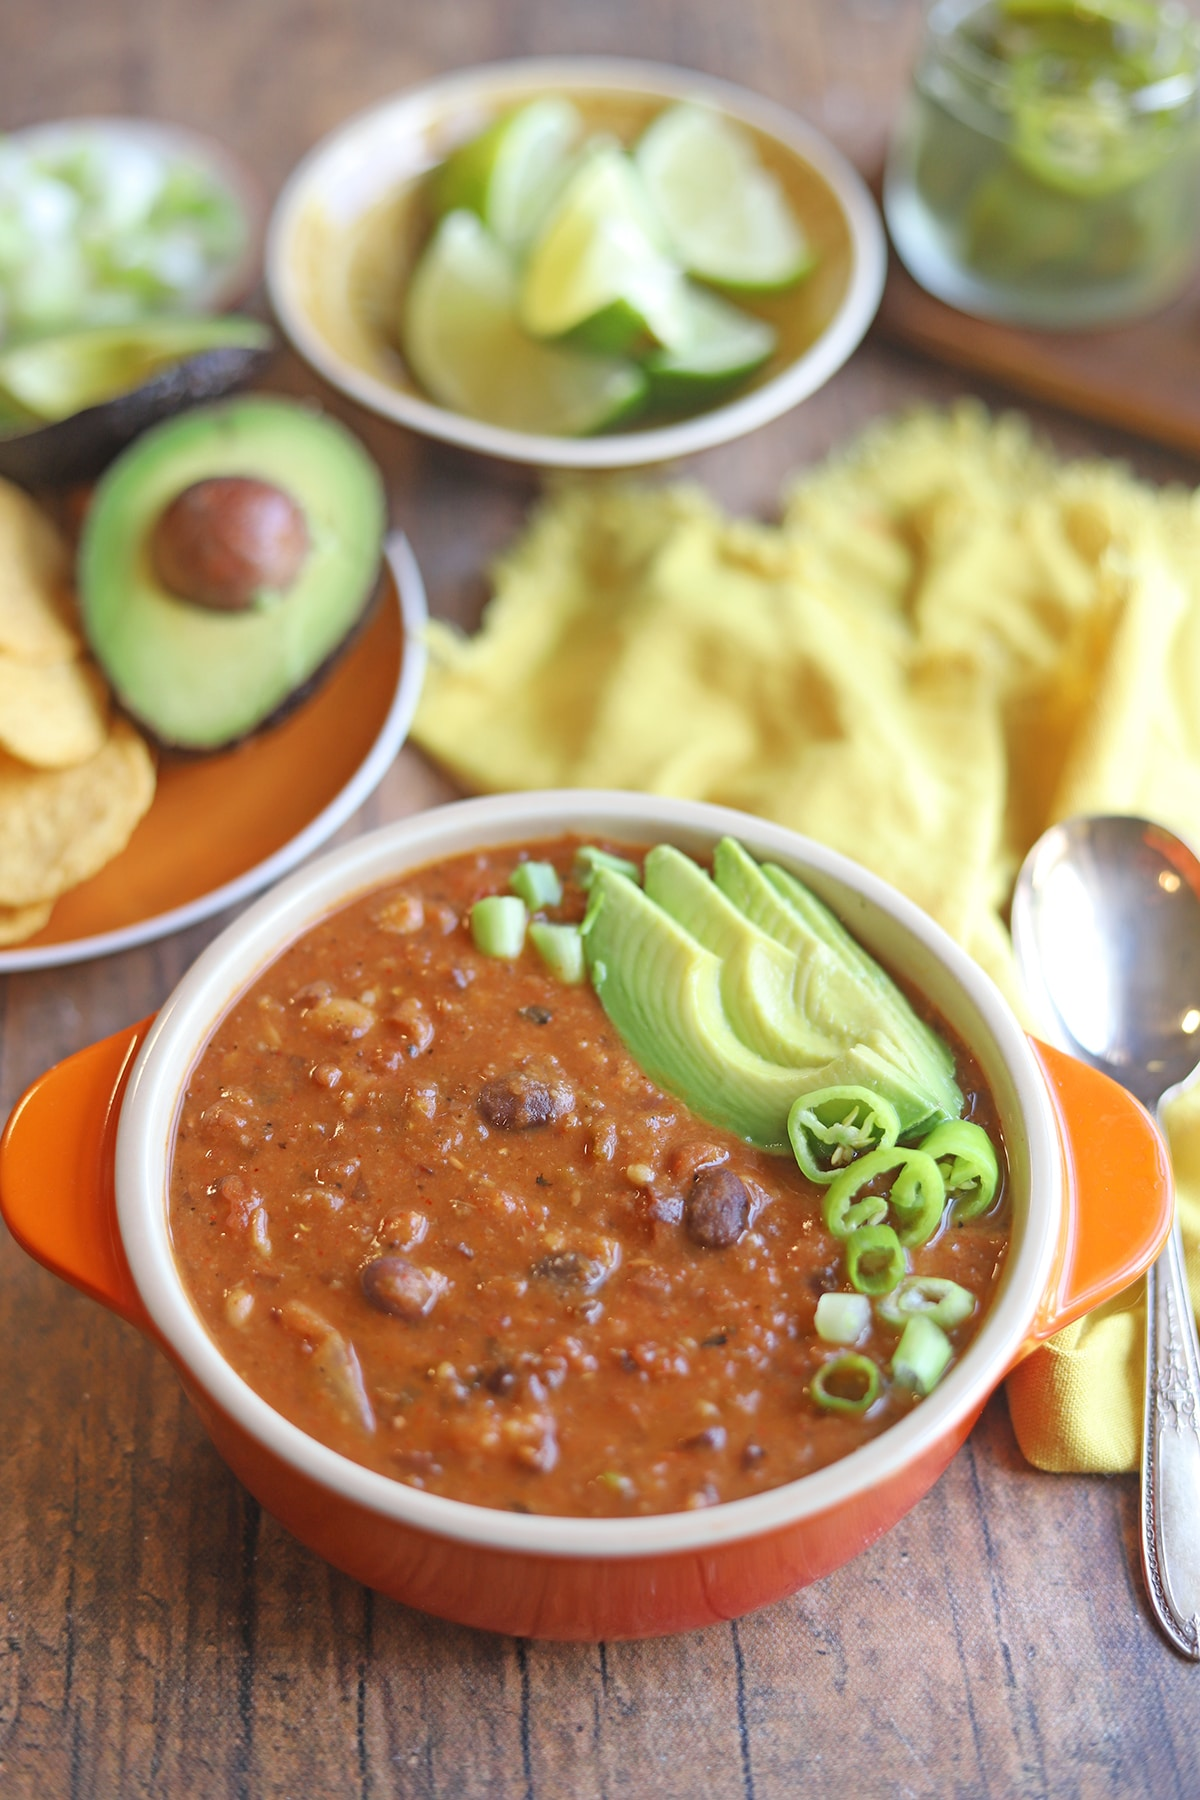 Orange bowl with chili by avocado, limes, and yellow napkin.